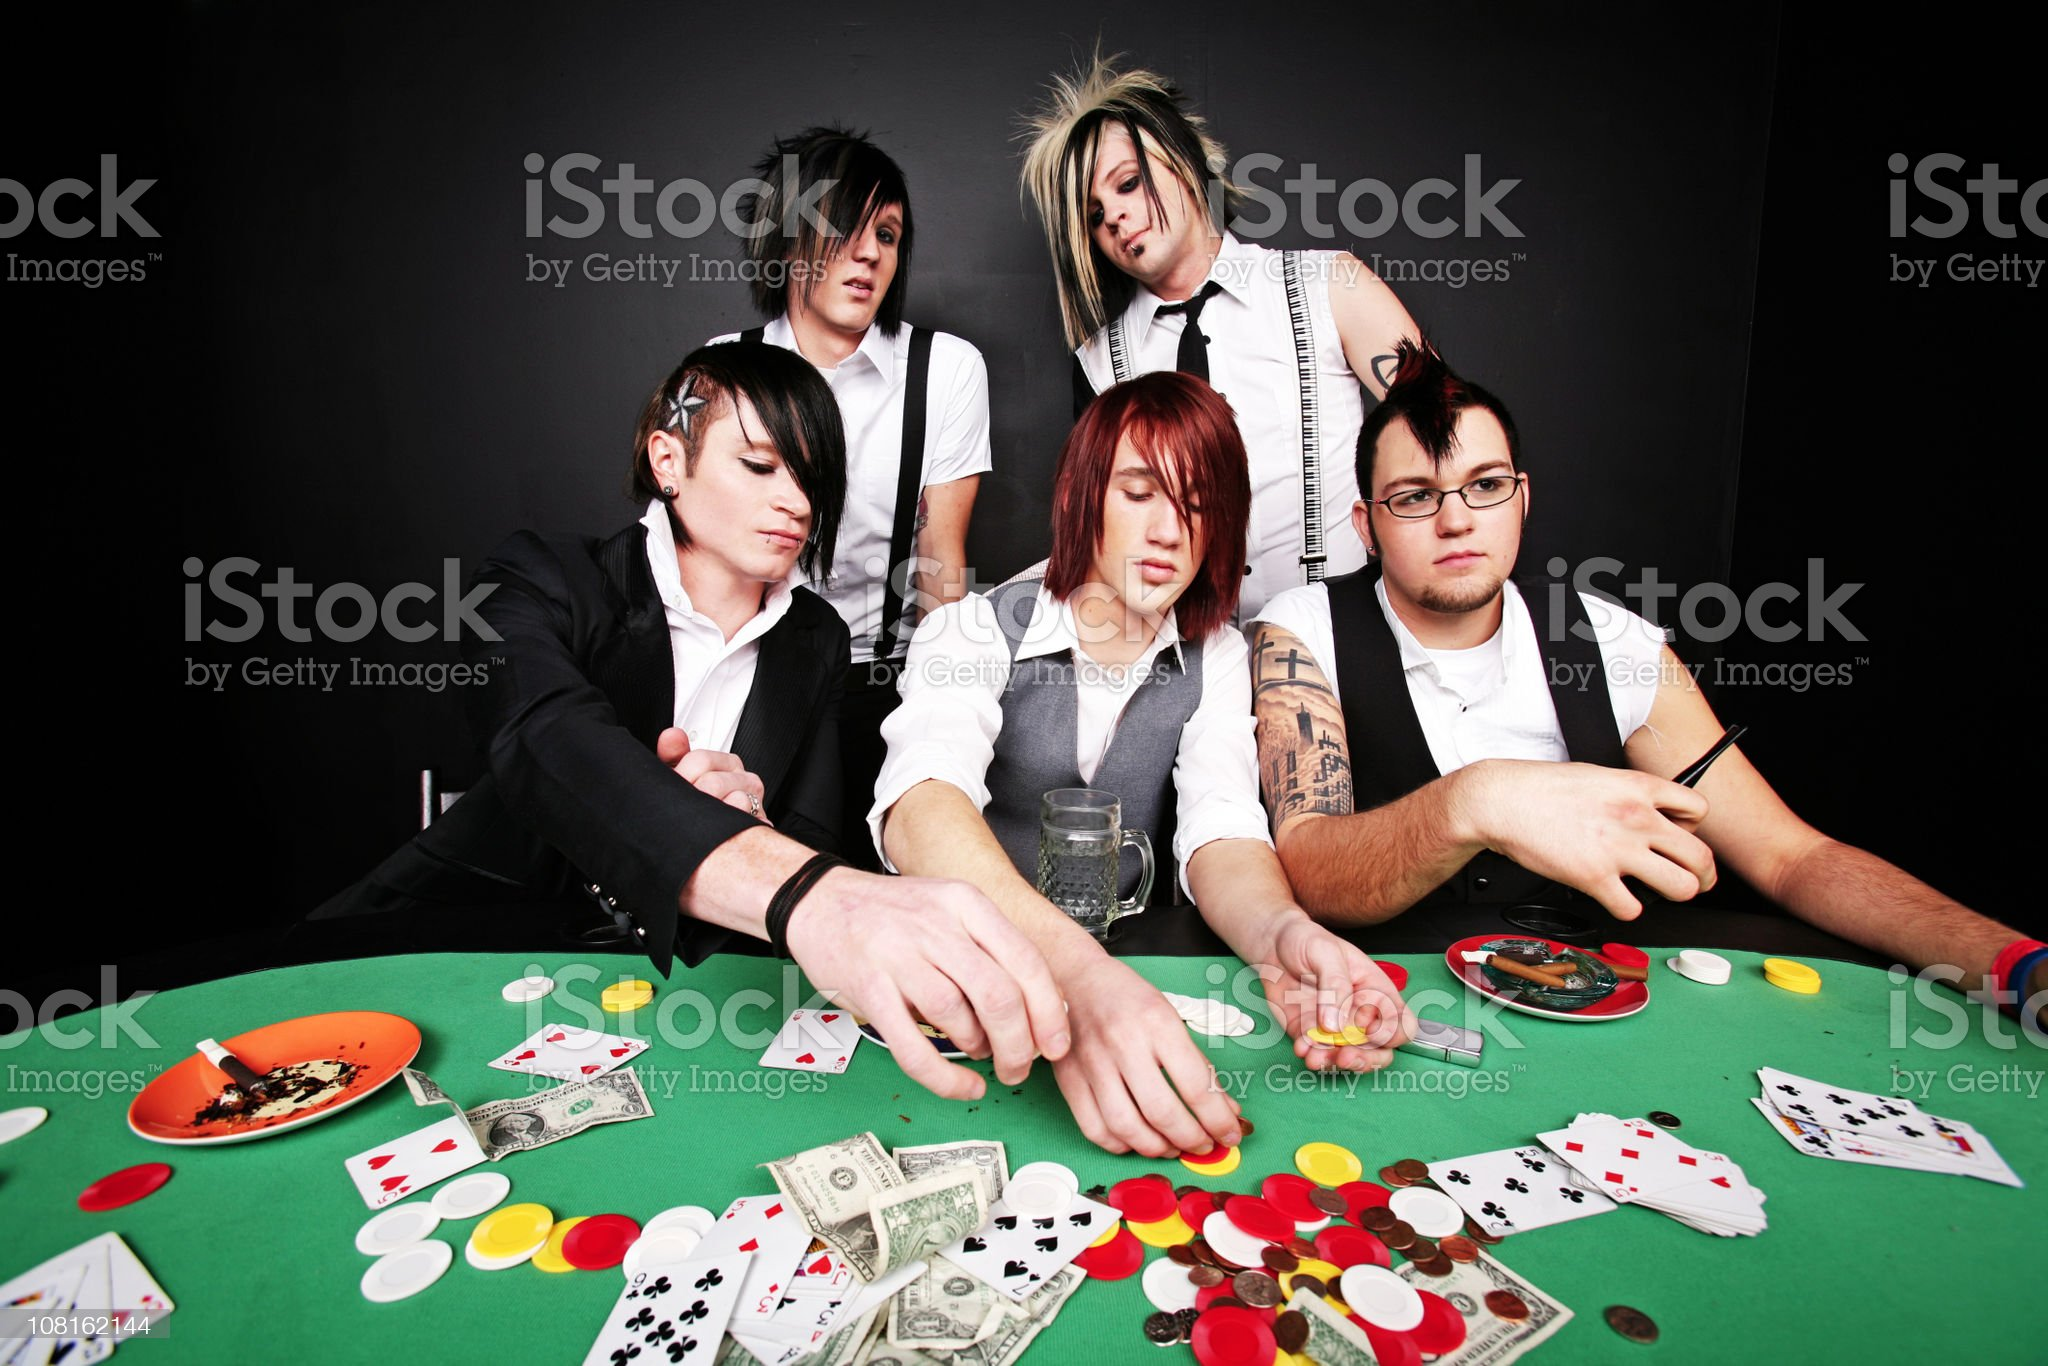 Males Passing Poker Chips at a Table royalty-free stock photo